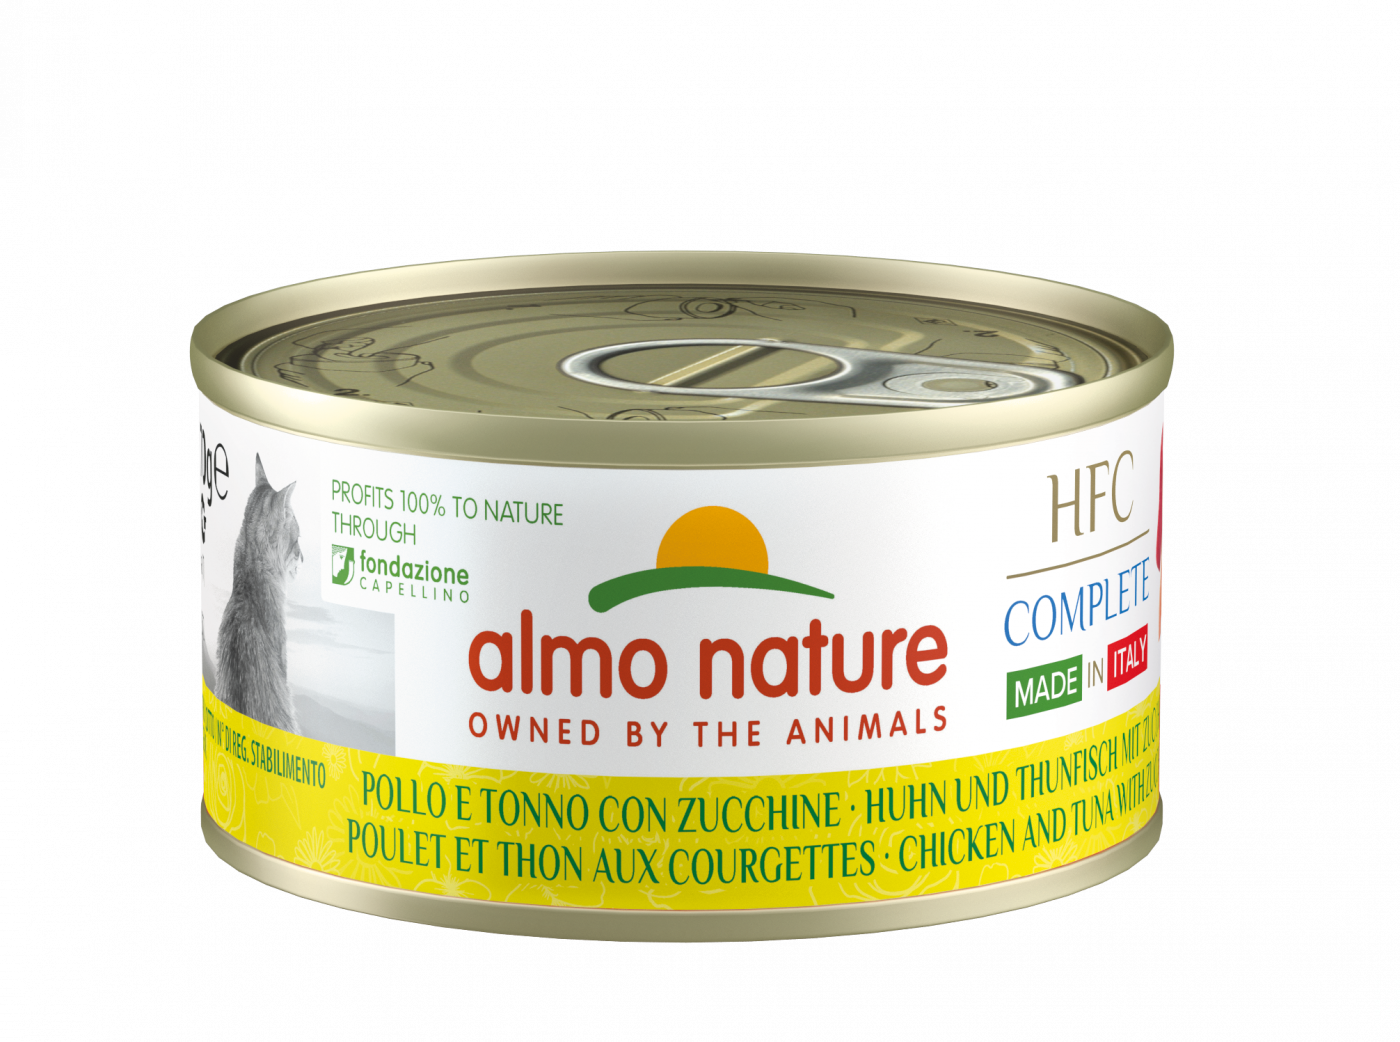 ¡OFERTA! CAT HFC COMPLETE MADE IN ITALY 70G